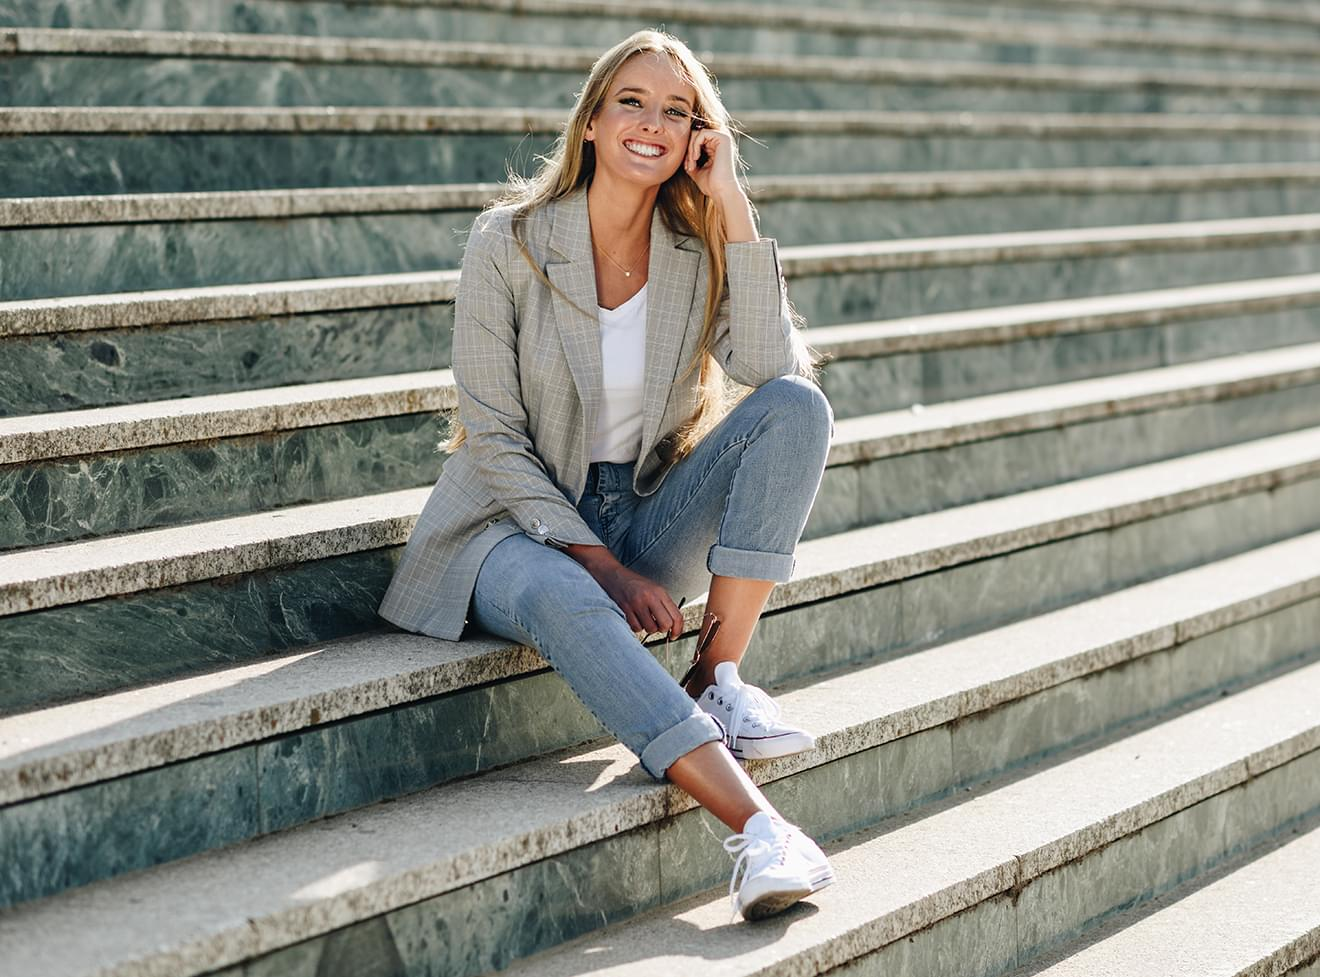 Image of a beautiful tan blonde woman sitting outdoors on stairs.